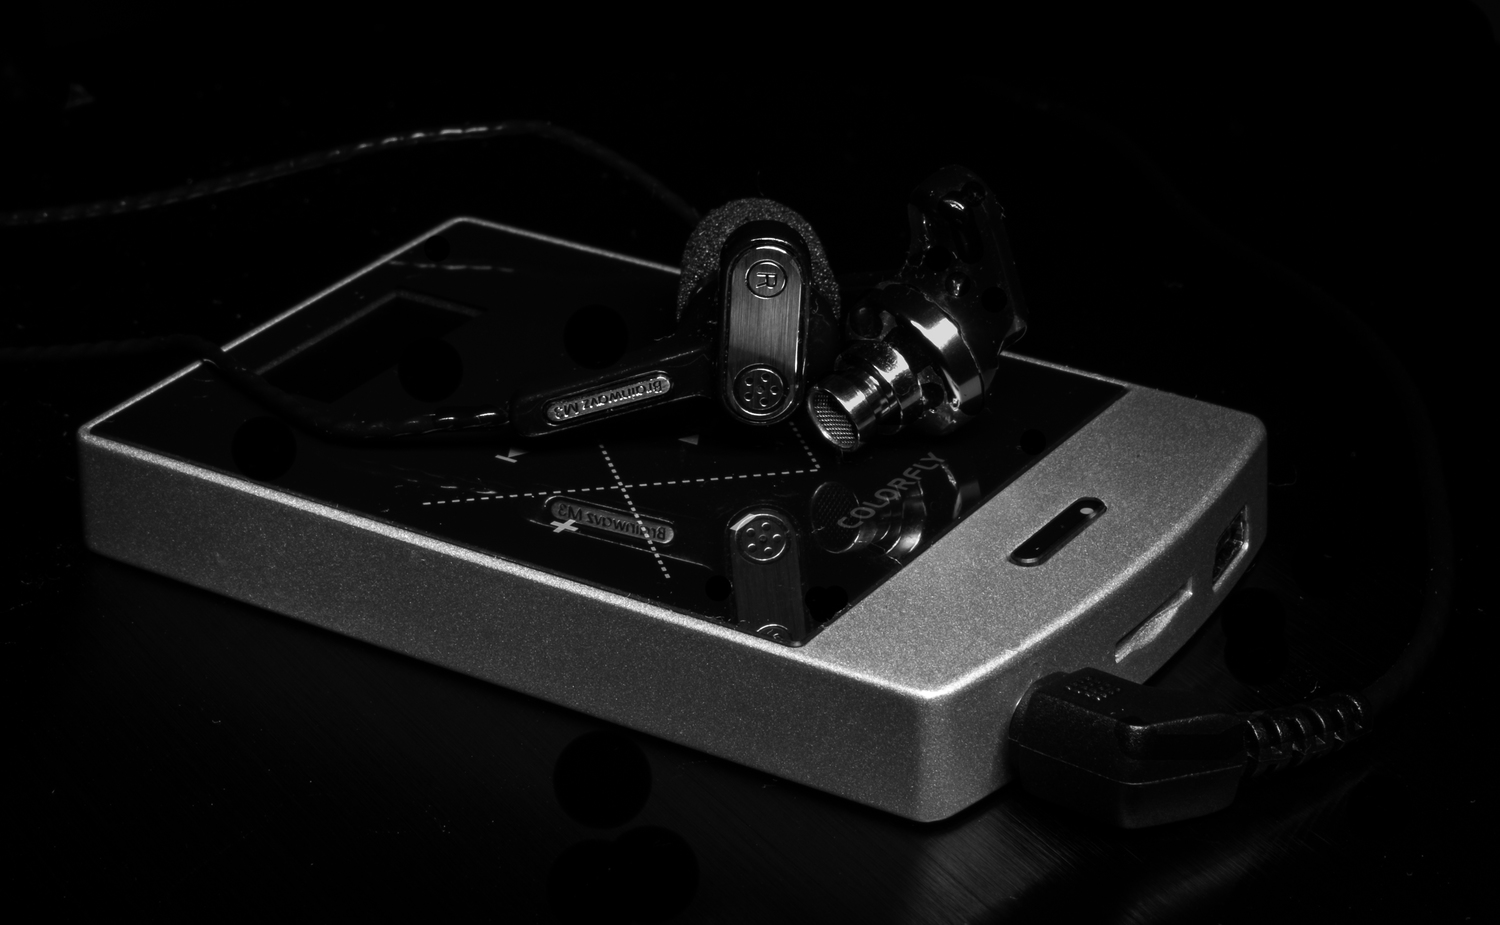 Conducting the review of the Brainwavz M3 earphones with the COlorfly C3 DAP (Digital Audio Player)